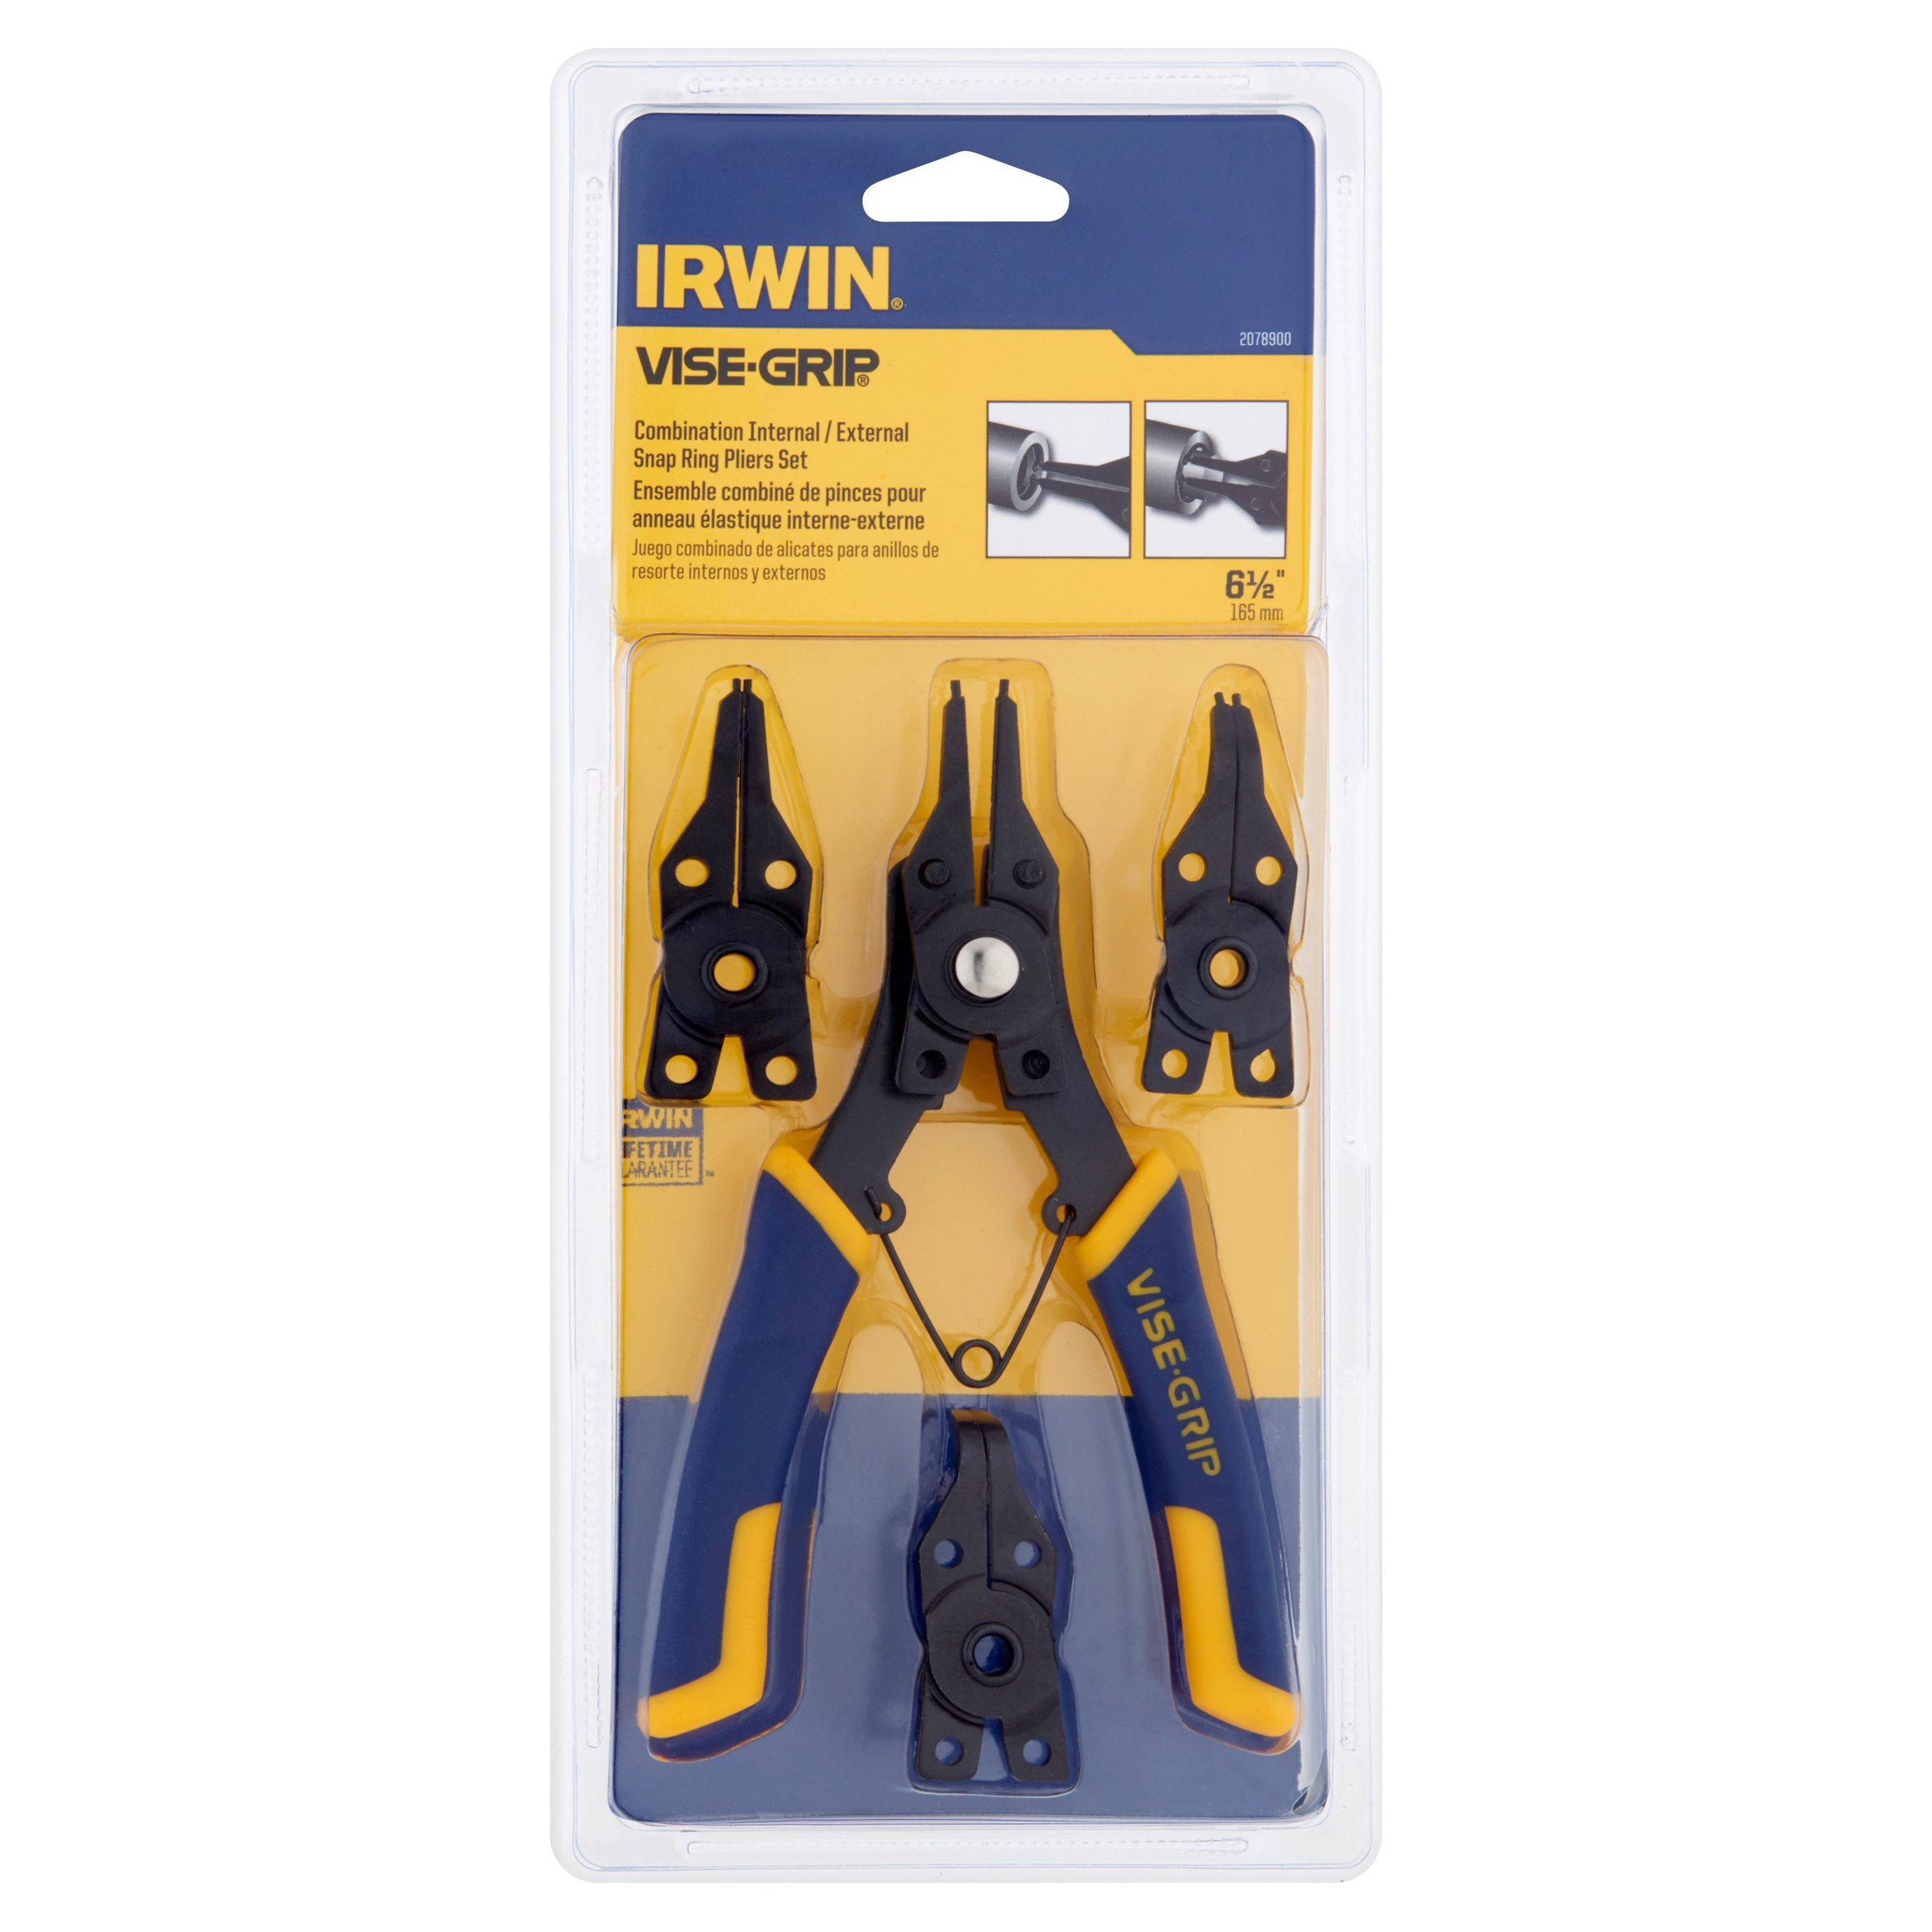 Irwin Vise-Grip Combination Internal/External Snap Ring Pliers Set